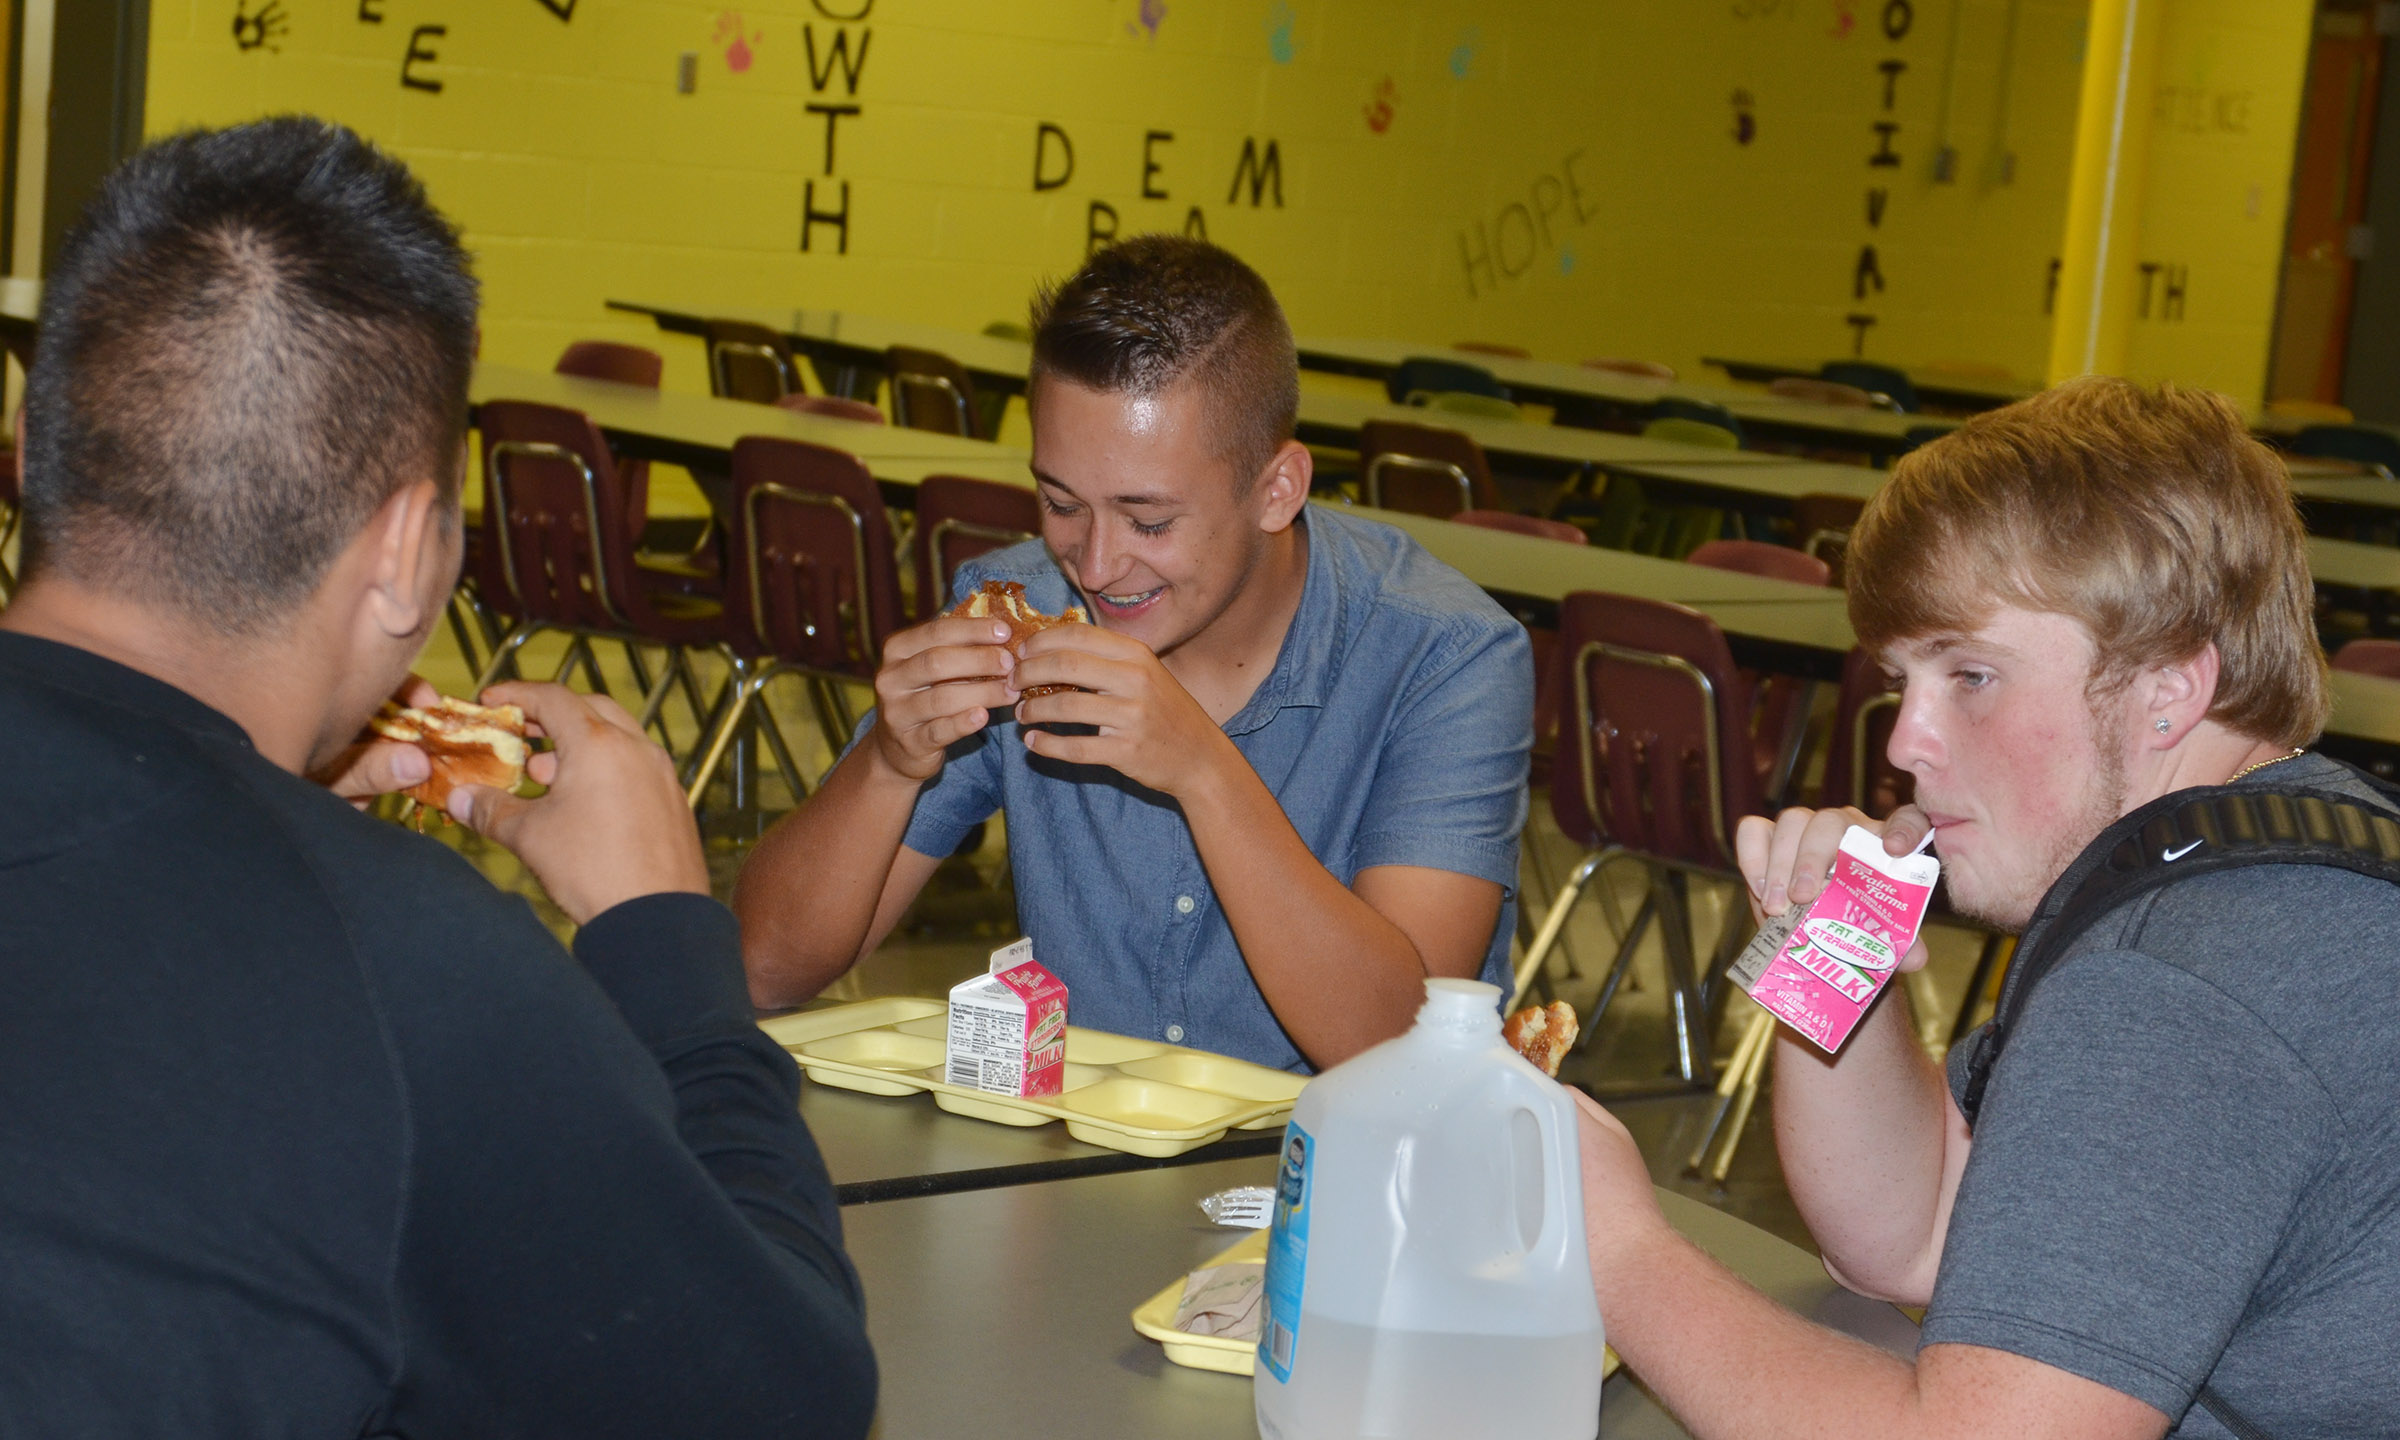 From left, CHS seniors Jericho Ramsey, Cody Davis and Ryan Jeffries eat lunch together.